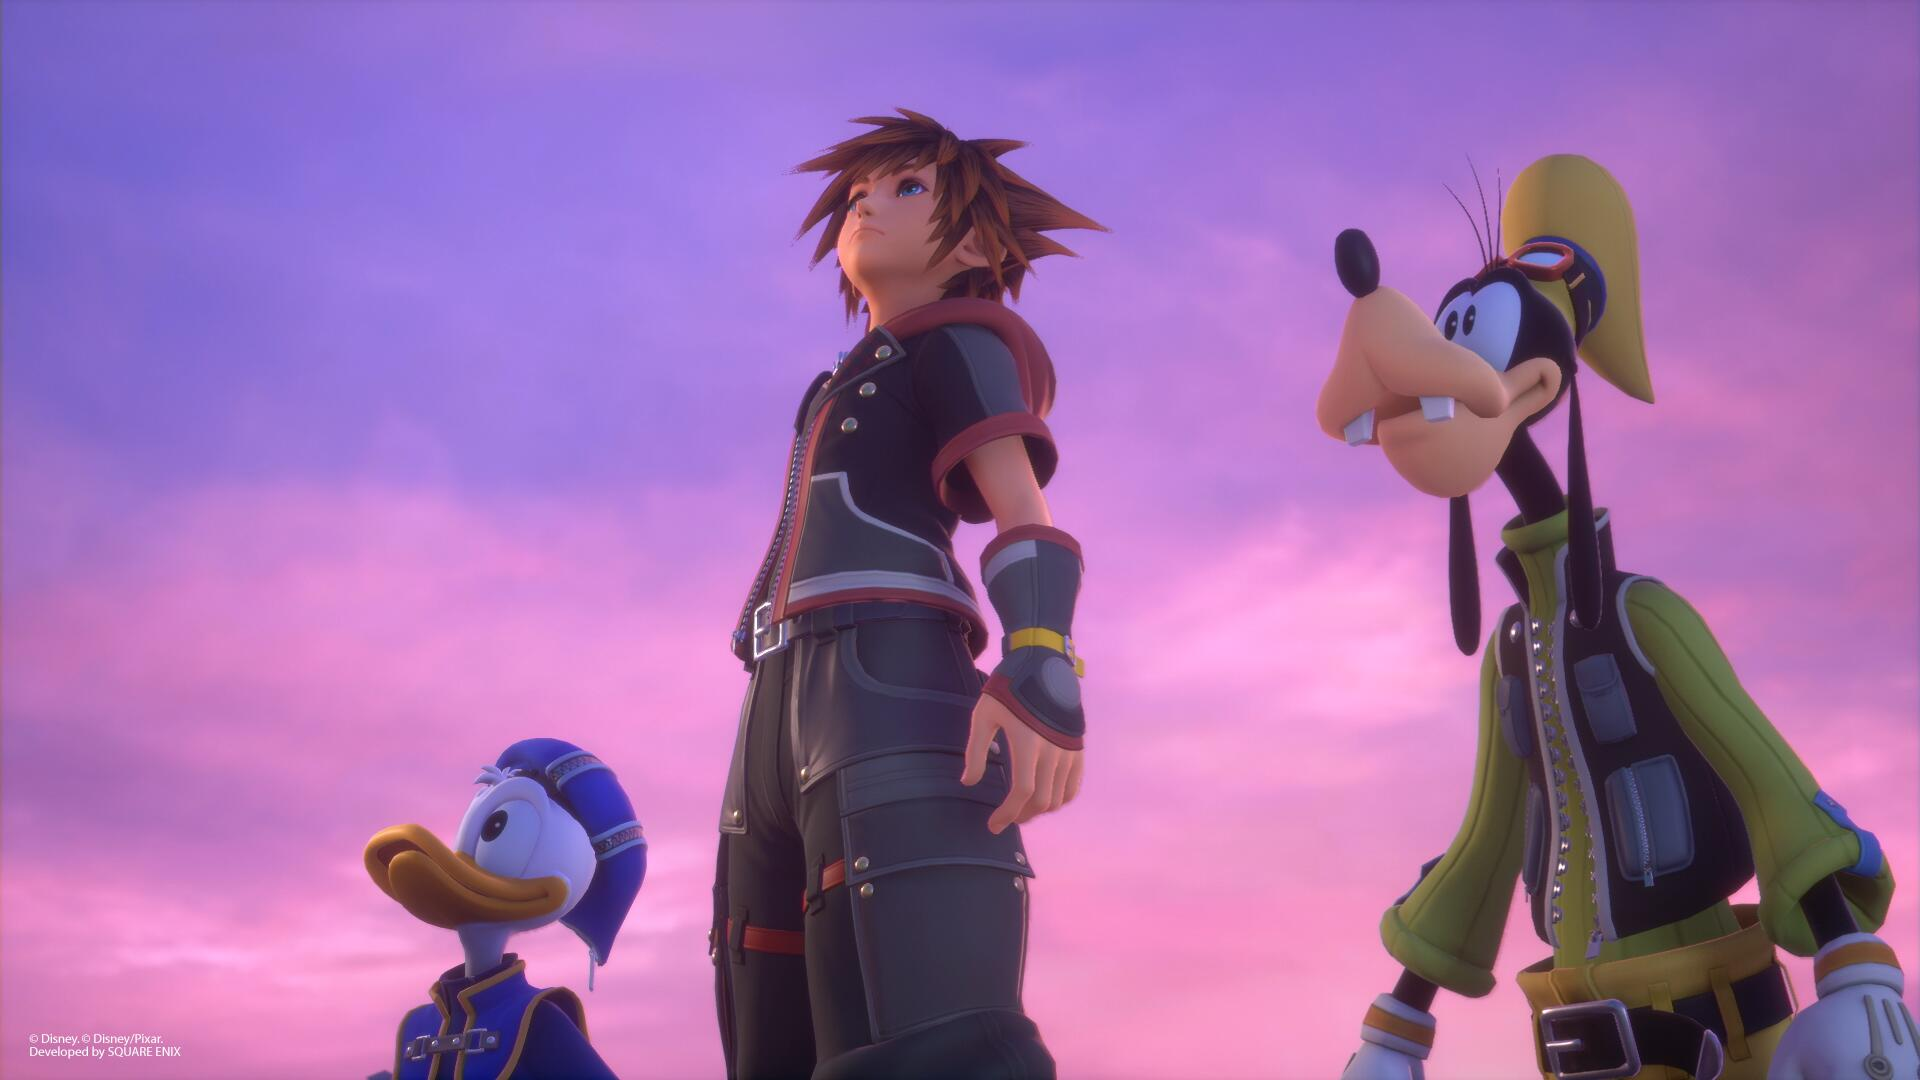 You Can Watch Hikaru Utada Perform a Pair of Kingdom Hearts Themes in VR Tomorrow for Free